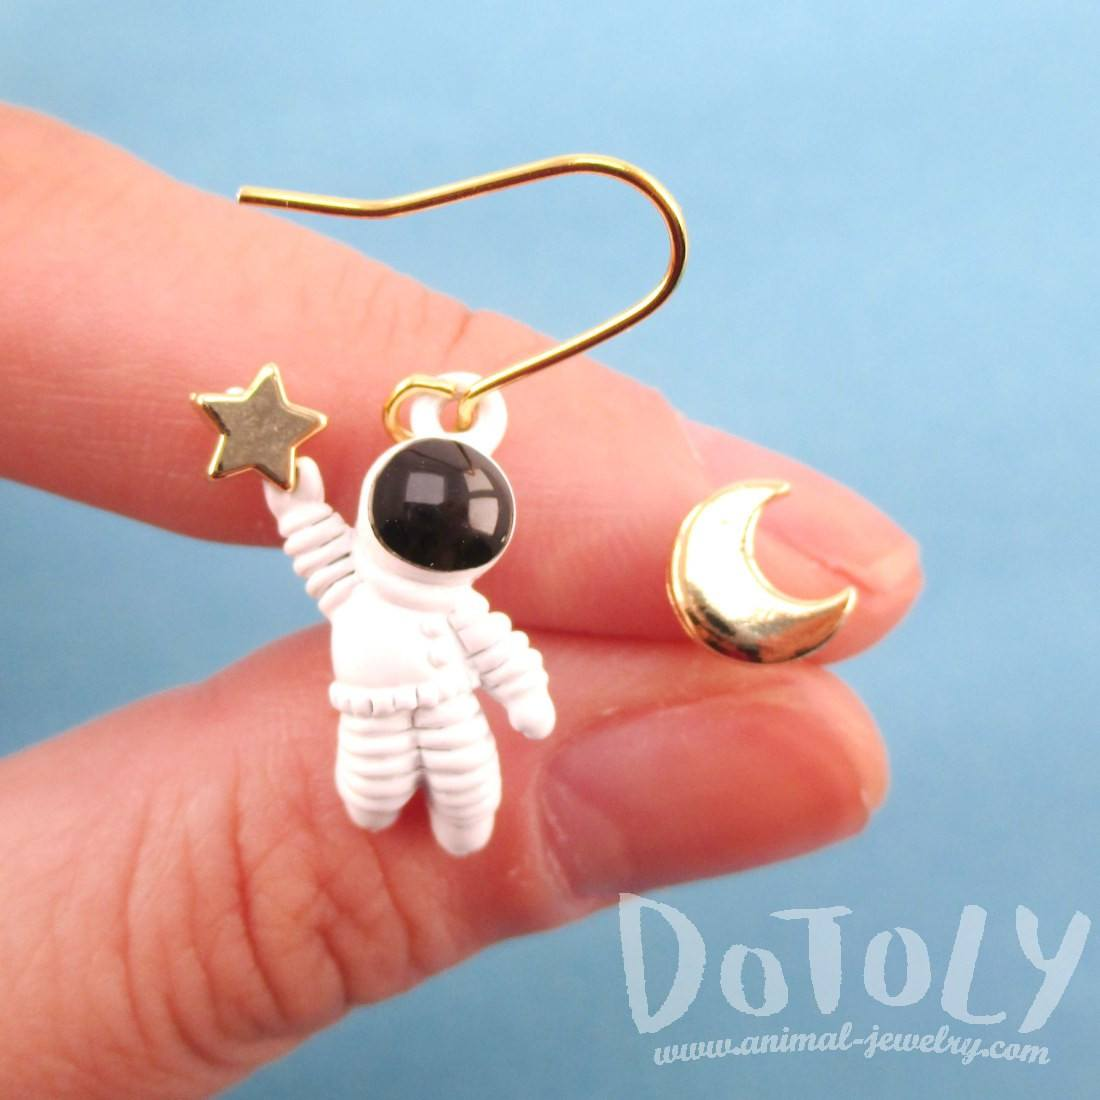 Enamel Astronaut and Crescent Moon Shaped Space Themed Earrings